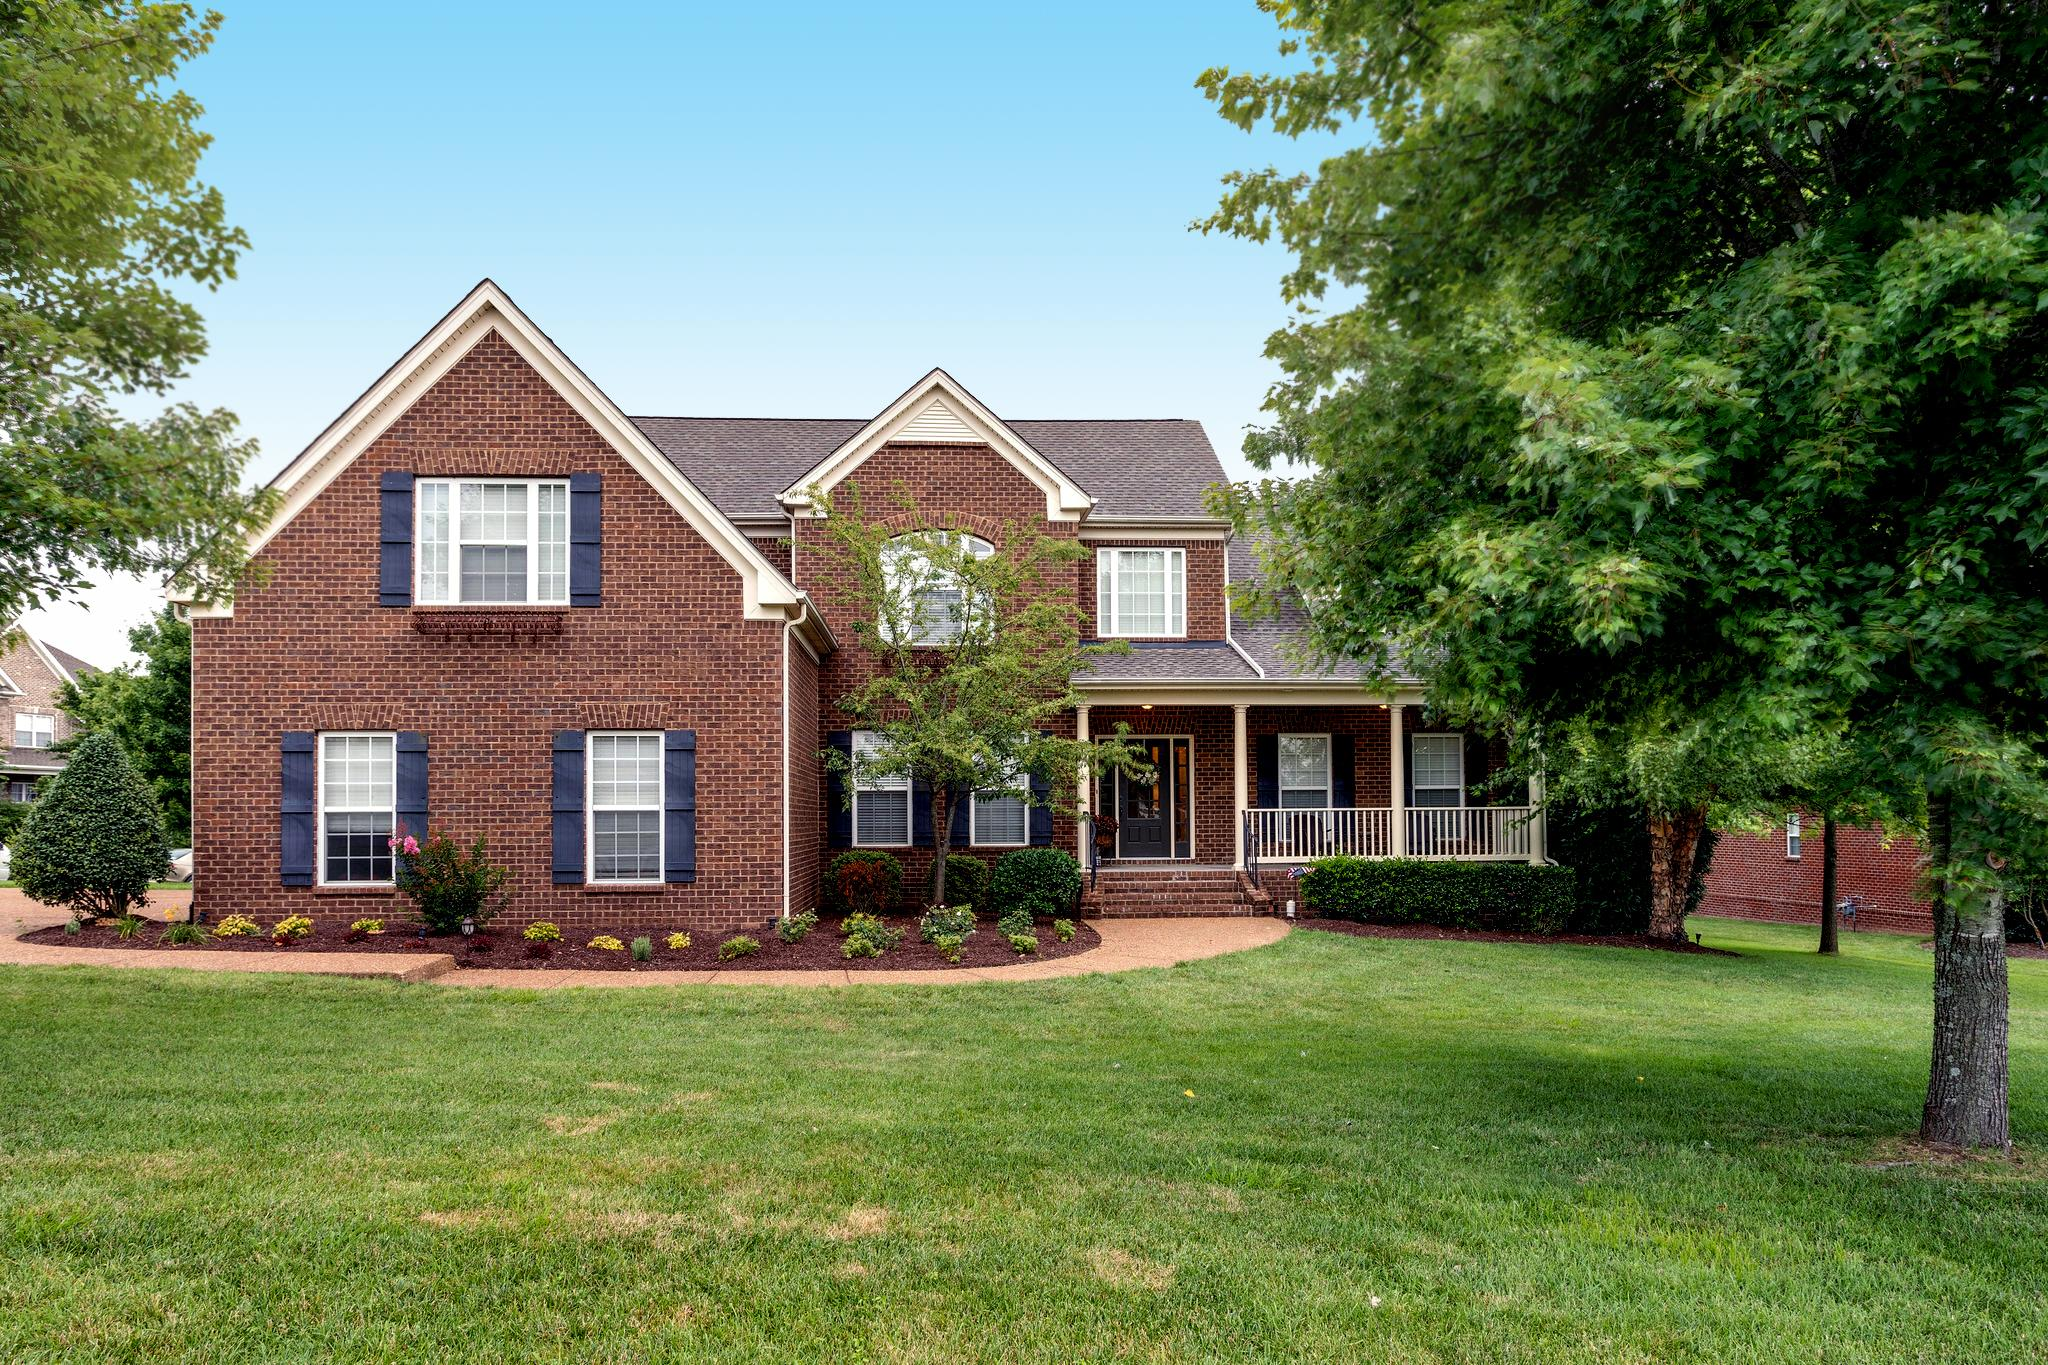 4038 Miles Johnson Pkwy, Spring Hill, TN 37174 - Spring Hill, TN real estate listing